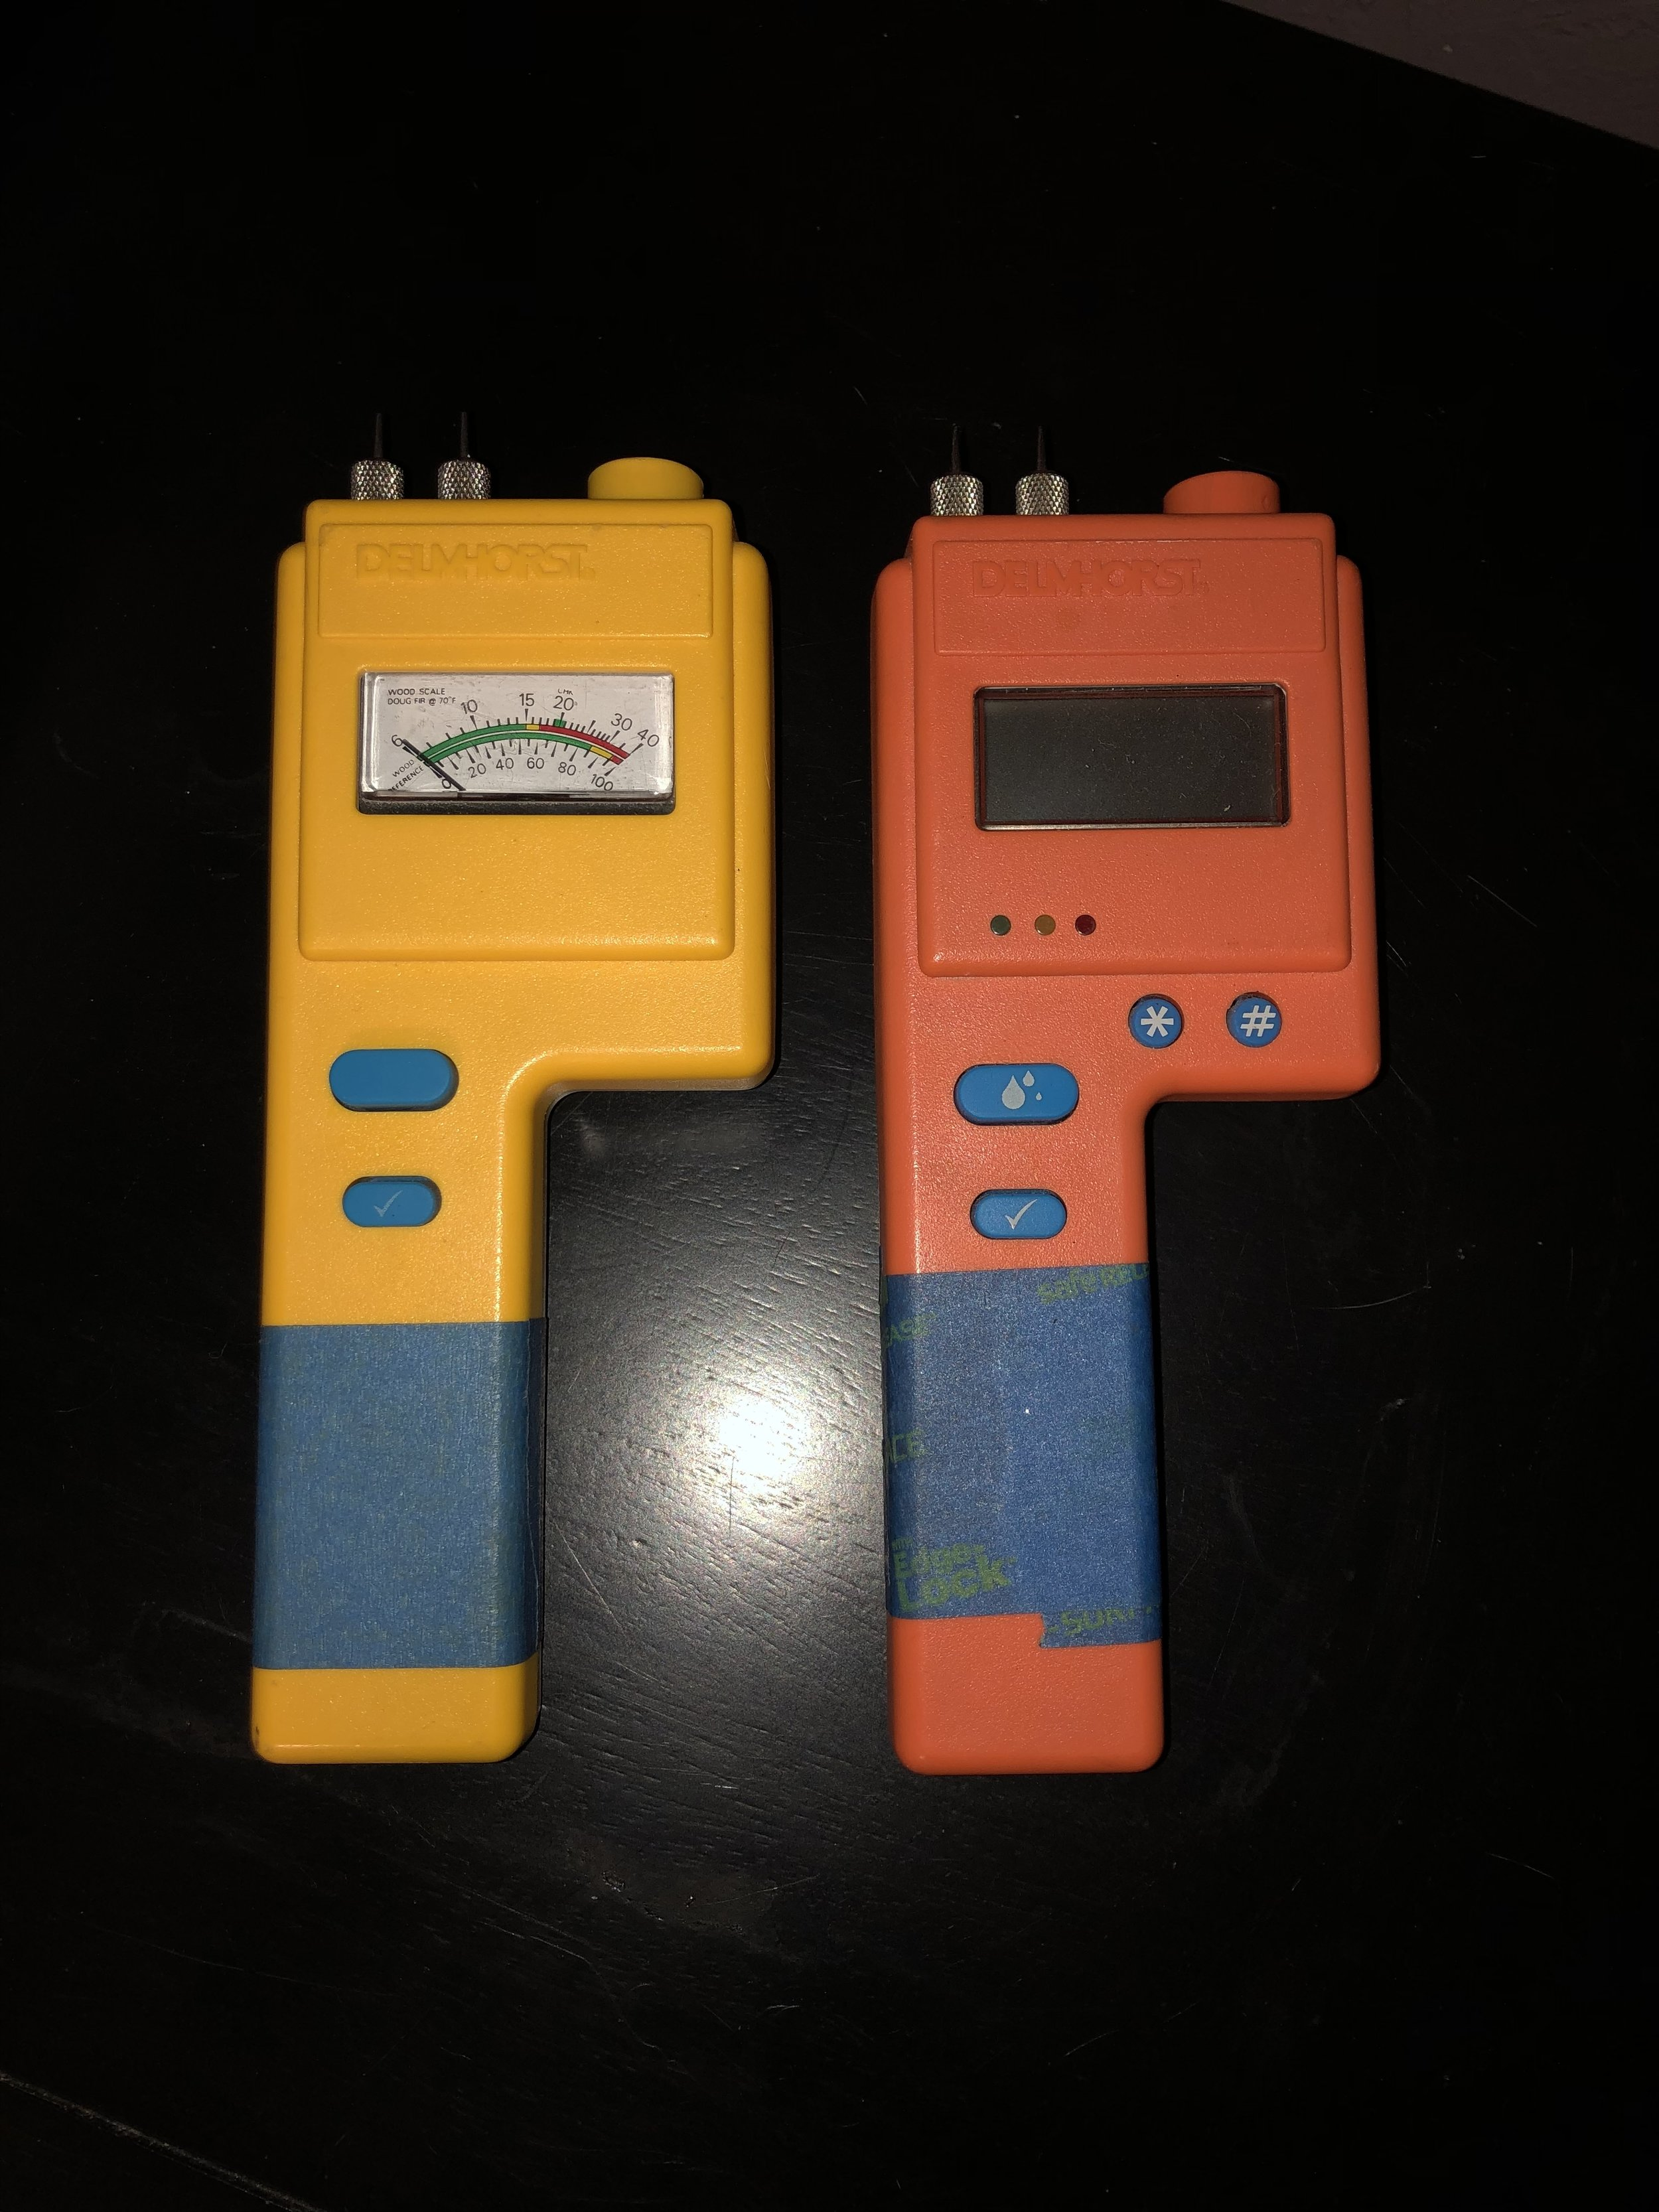 delmhorst-pin-style-moisture-meters.jpg